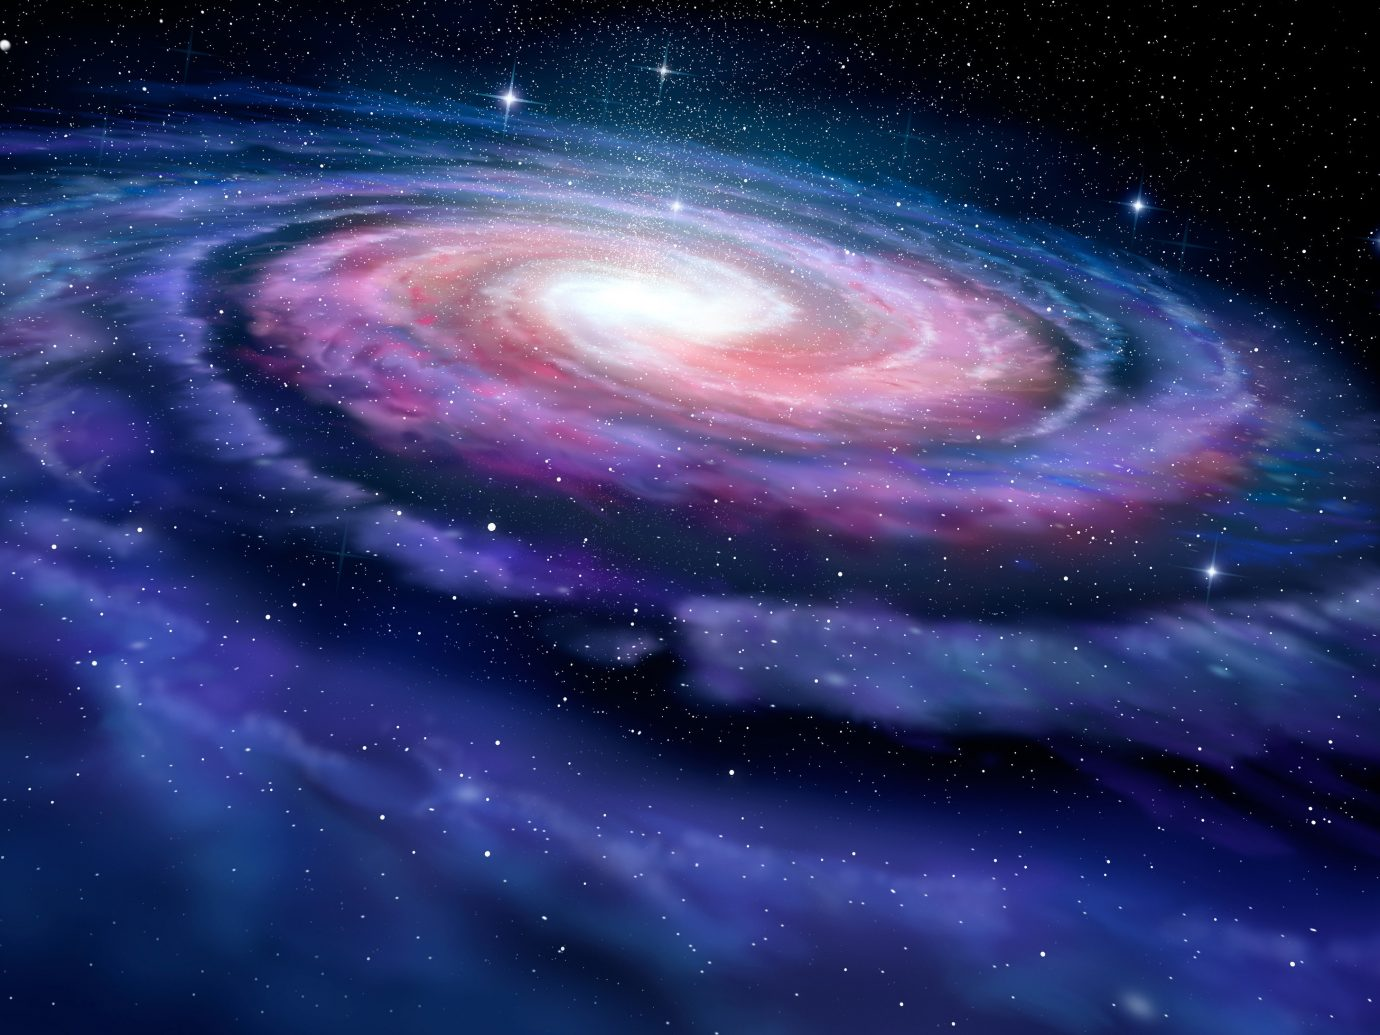 News star galaxy outdoor object astronomical object outer space atmosphere universe nebula astronomy space